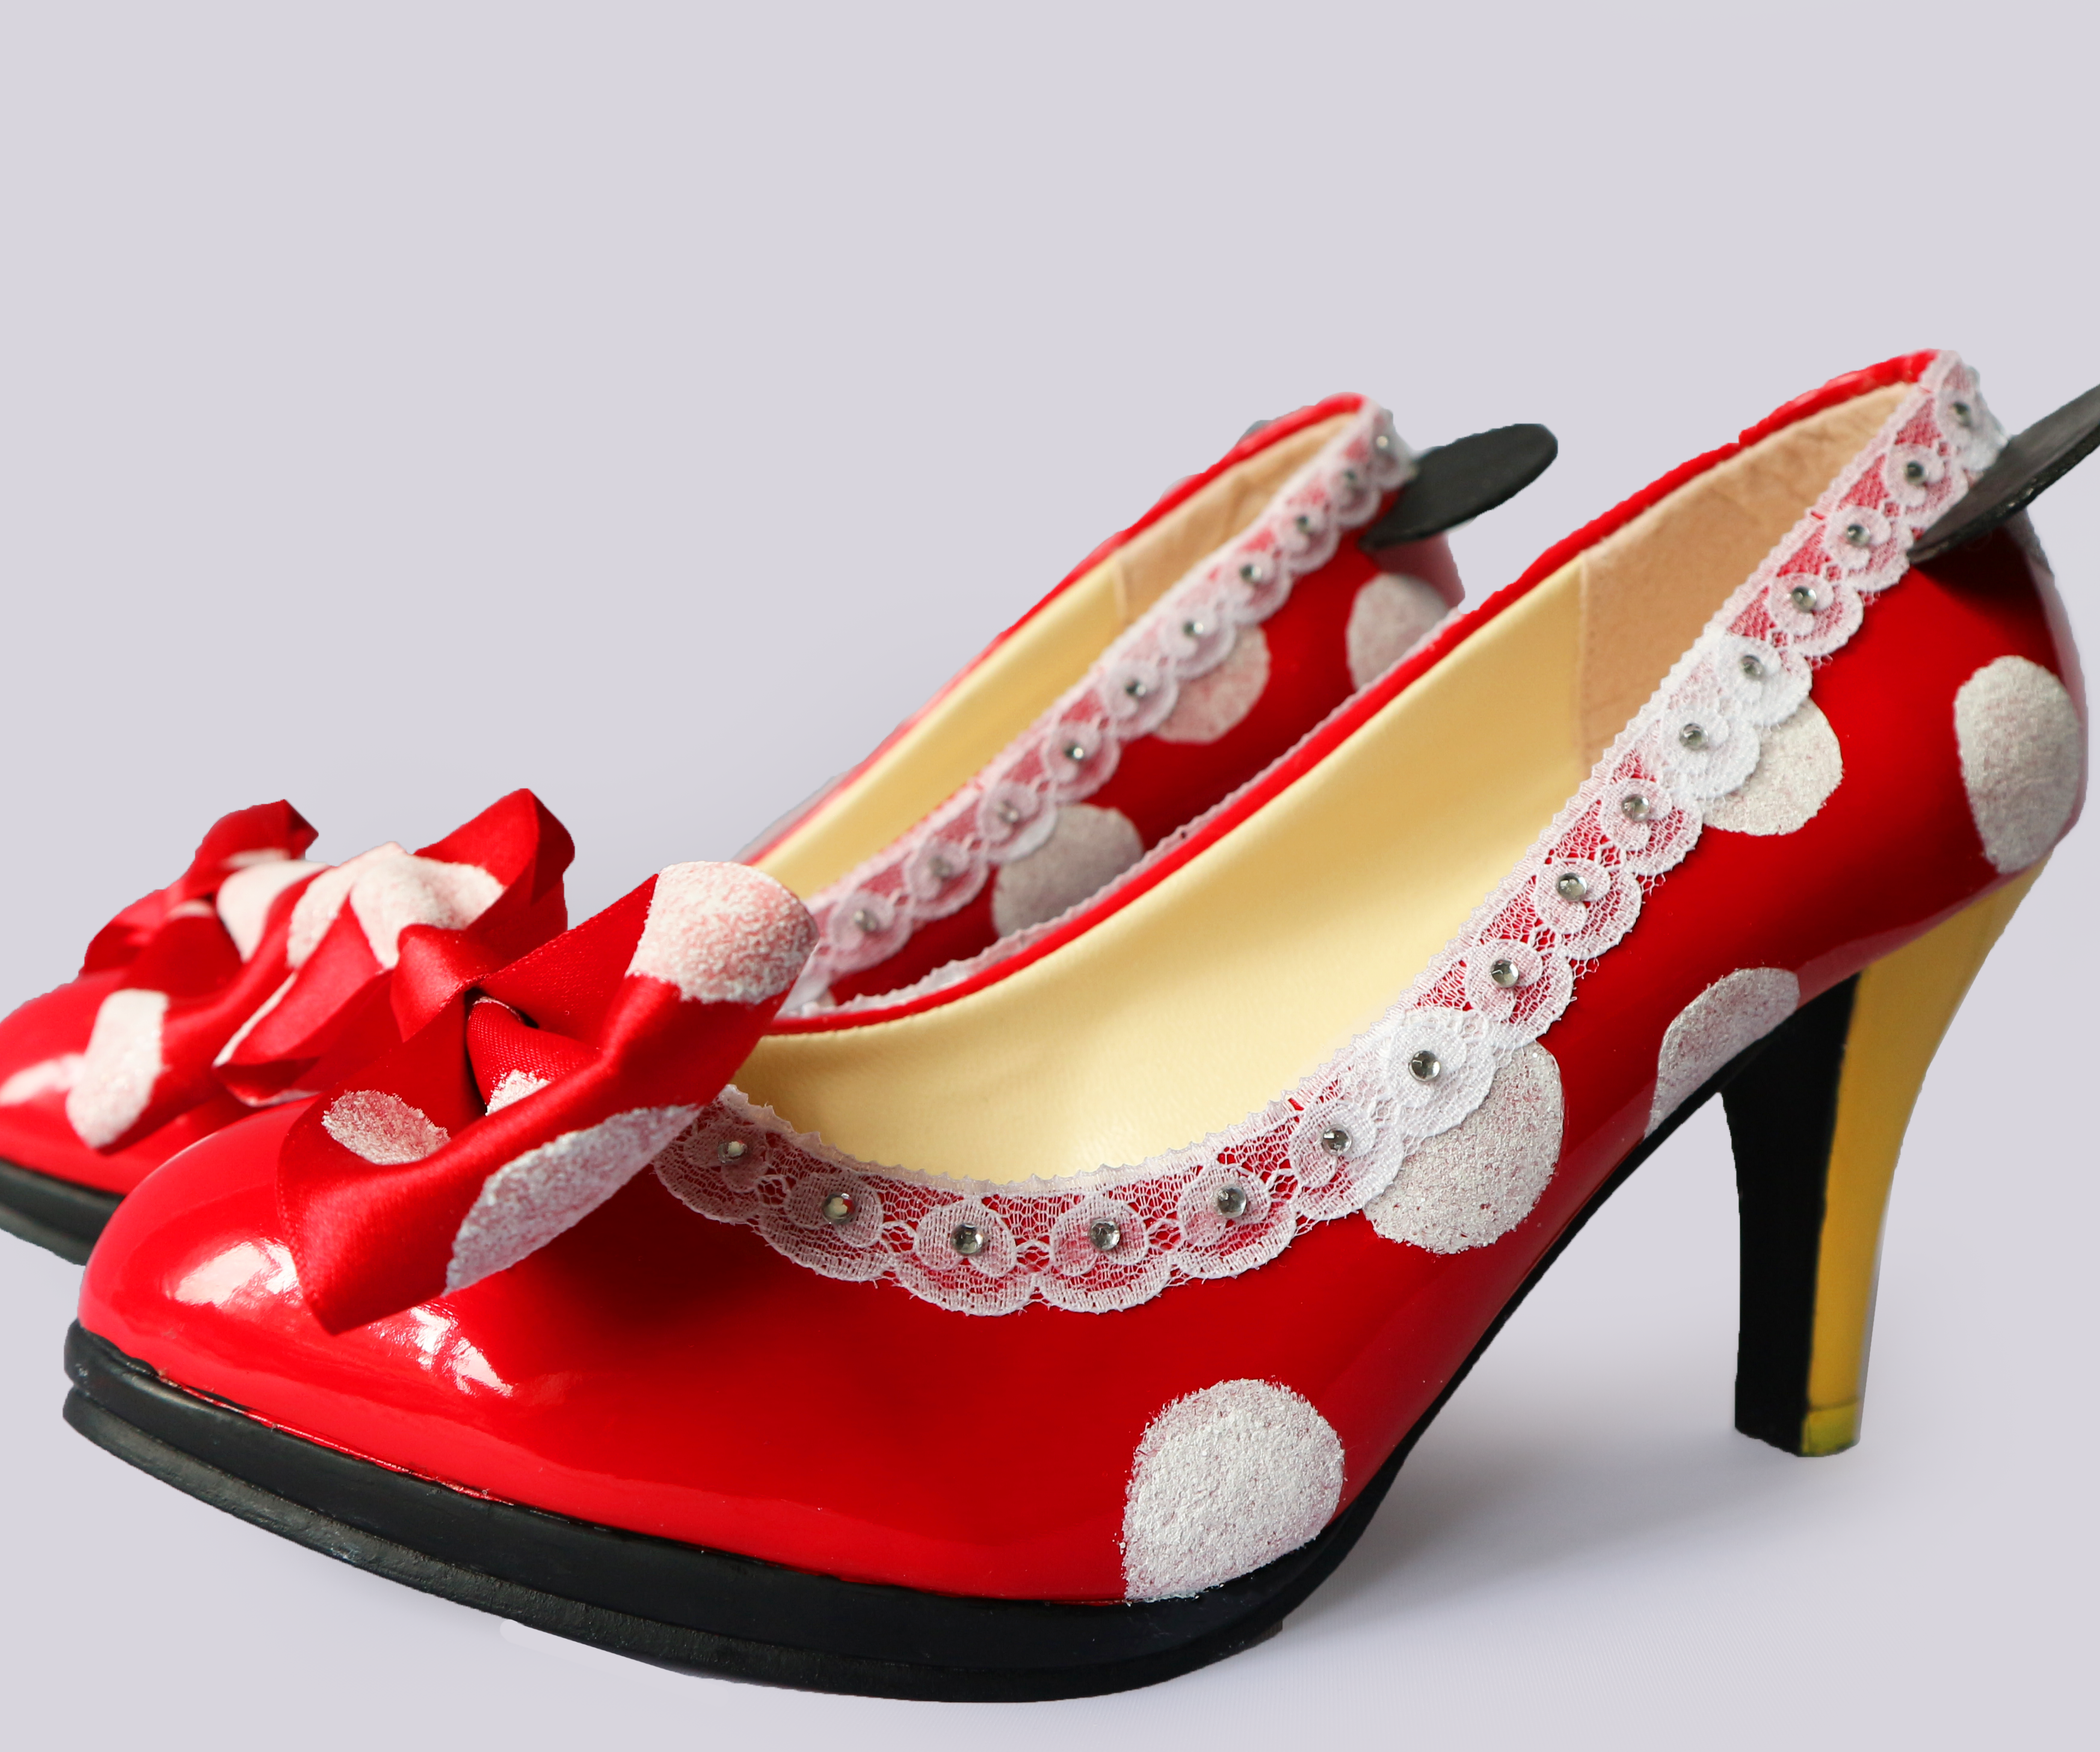 b929ed27bdfd Minnie Mouse High Heel Shoes  6 Steps (with Pictures)